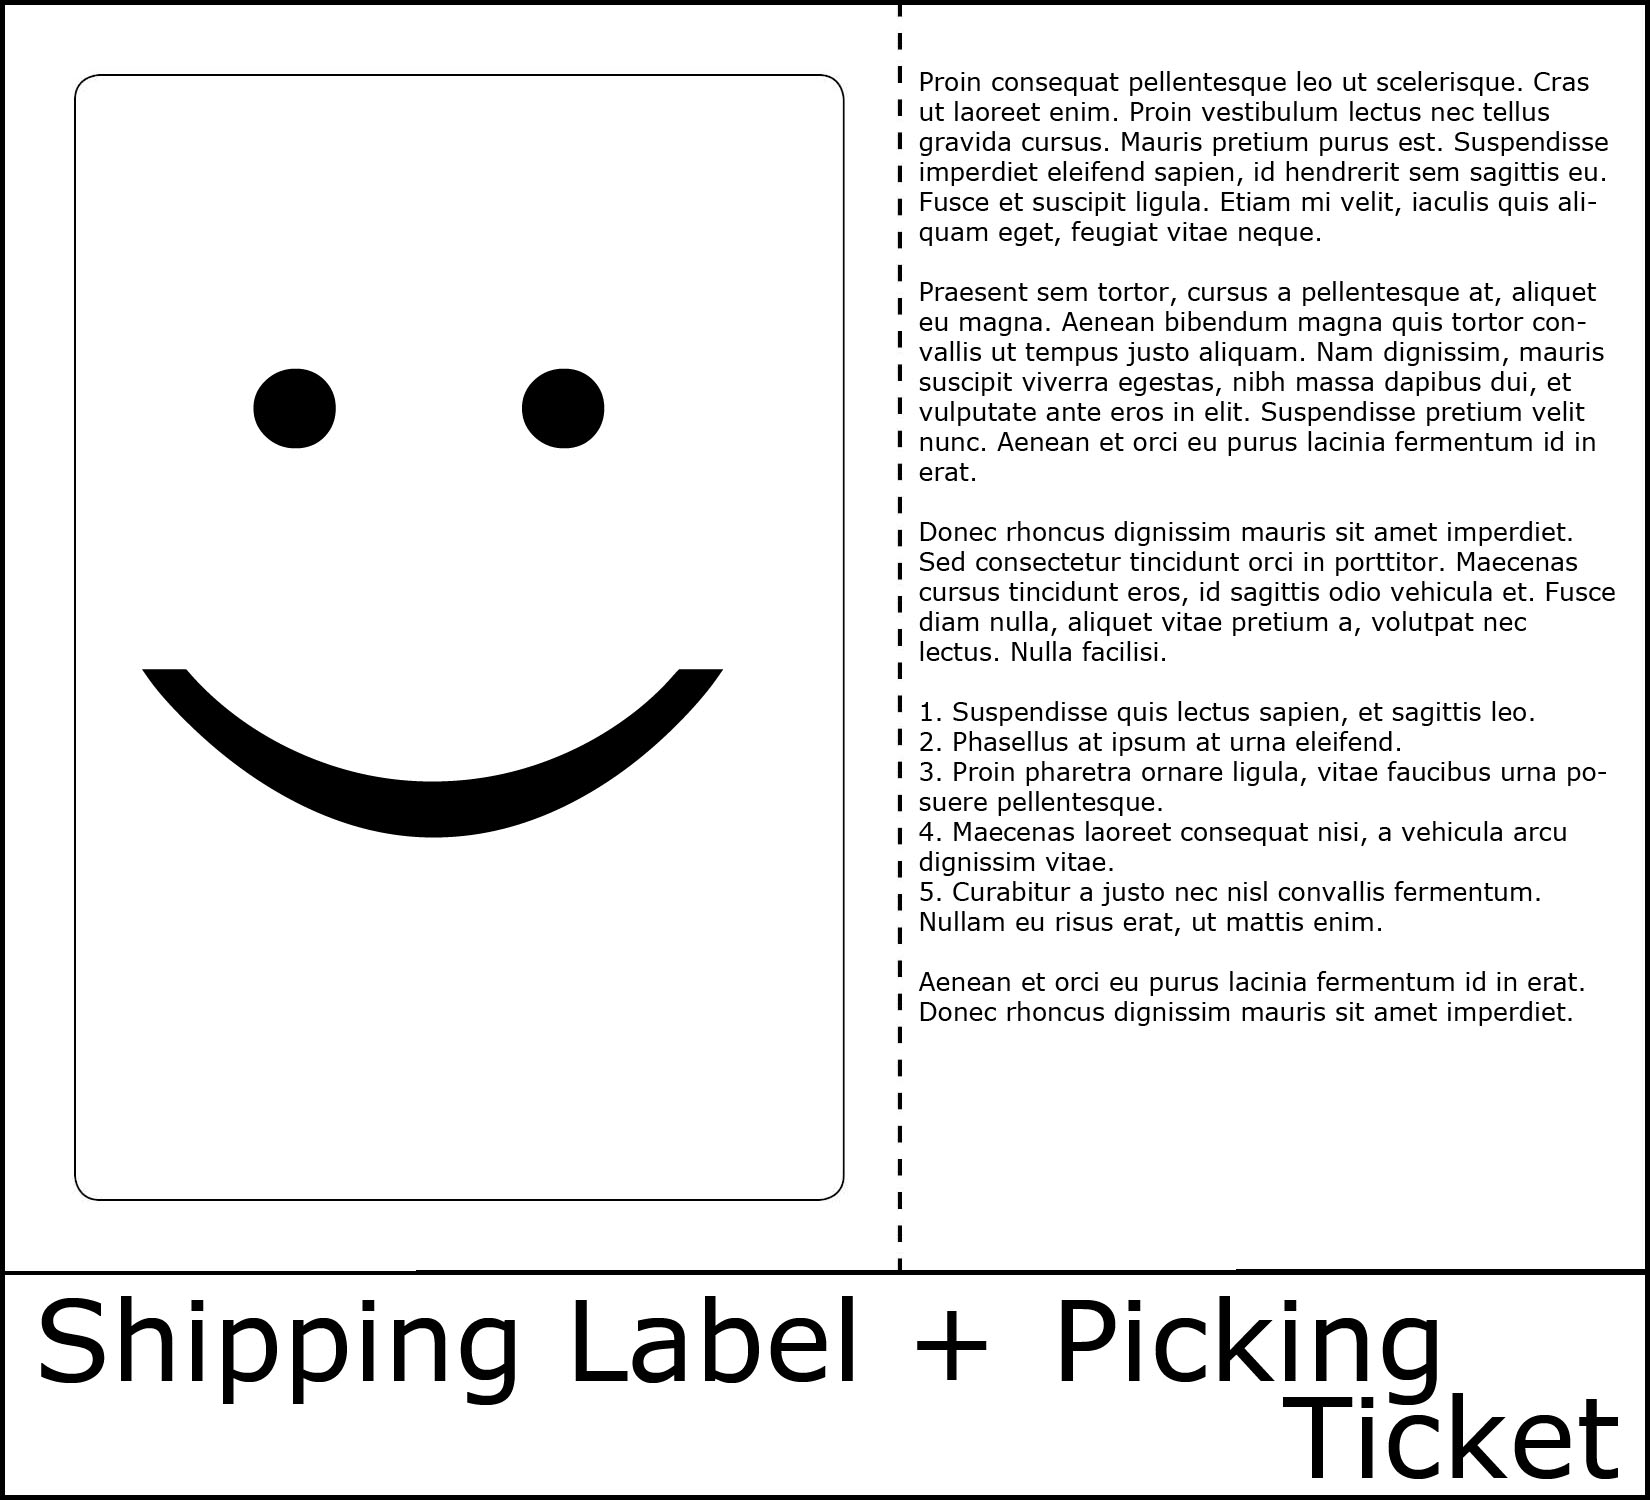 Packing Slip Templates packing list template quote for services – Sample Packing Slip